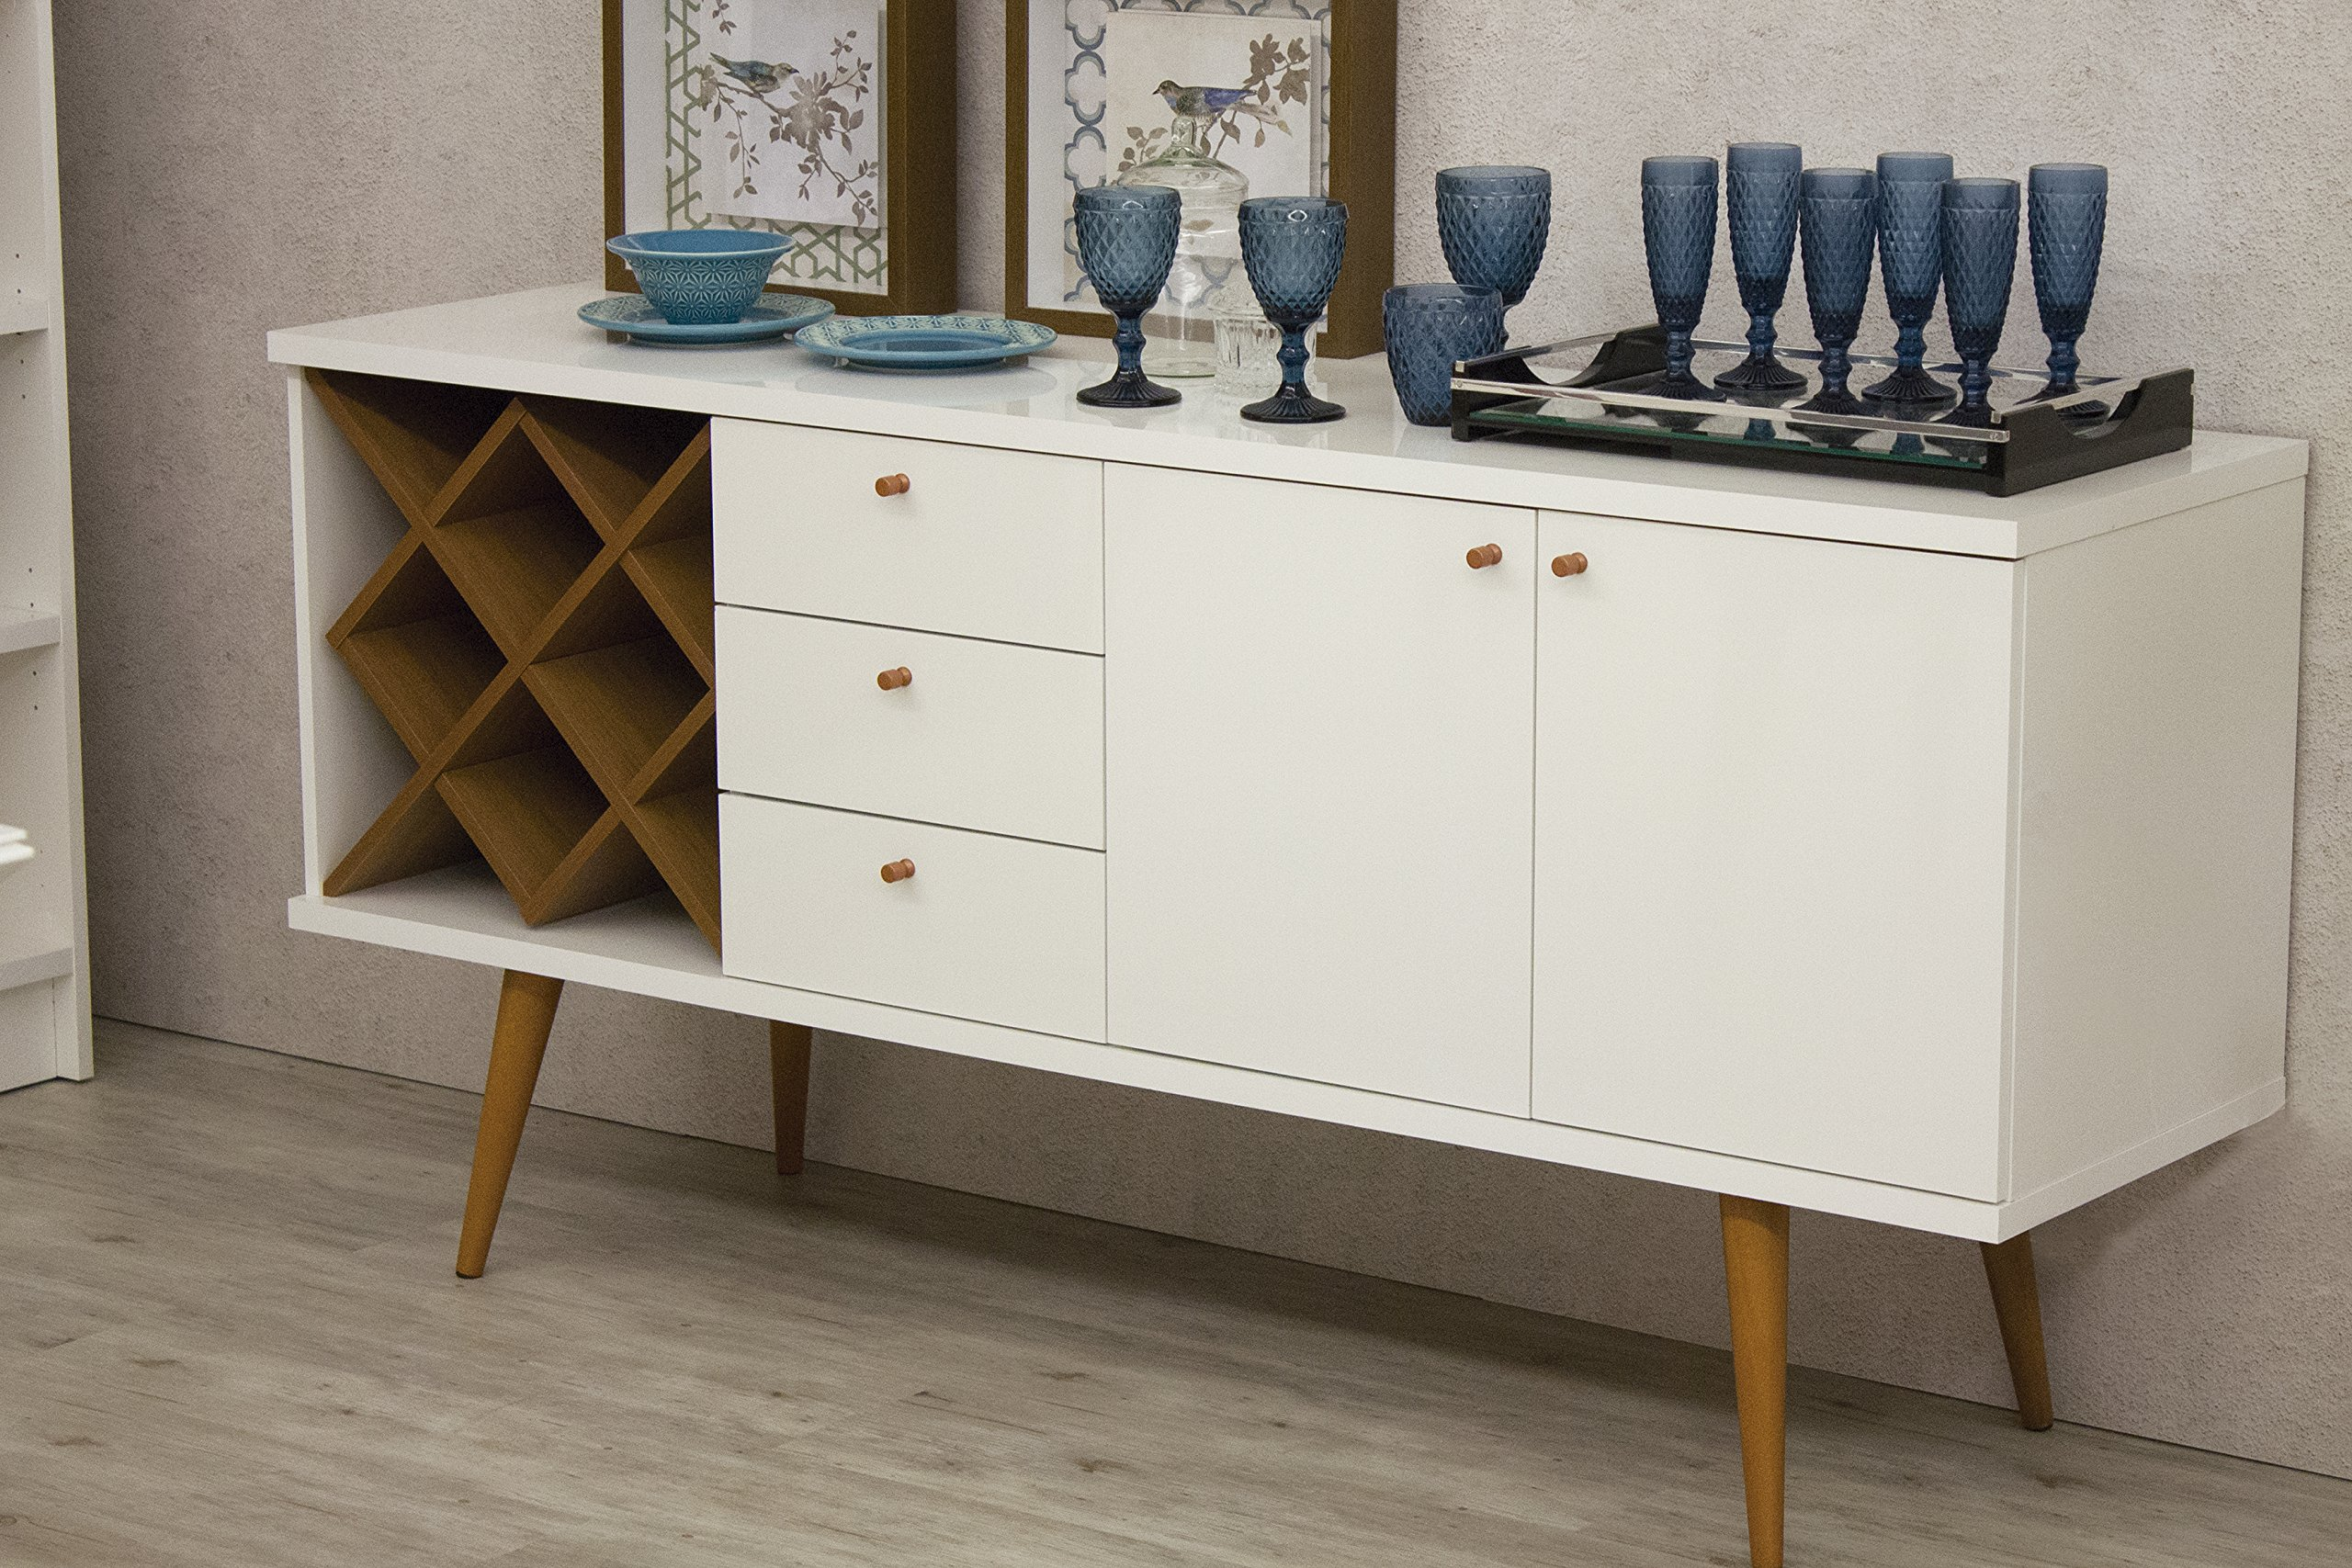 Manhattan Comfort Utopia Collection Mid Century Modern Sideboard Buffet Stand With 4 Bottle Wine Rack, Cabinet and 3 Drawers, Splayed Legs, White by Manhattan Comfort (Image #2)